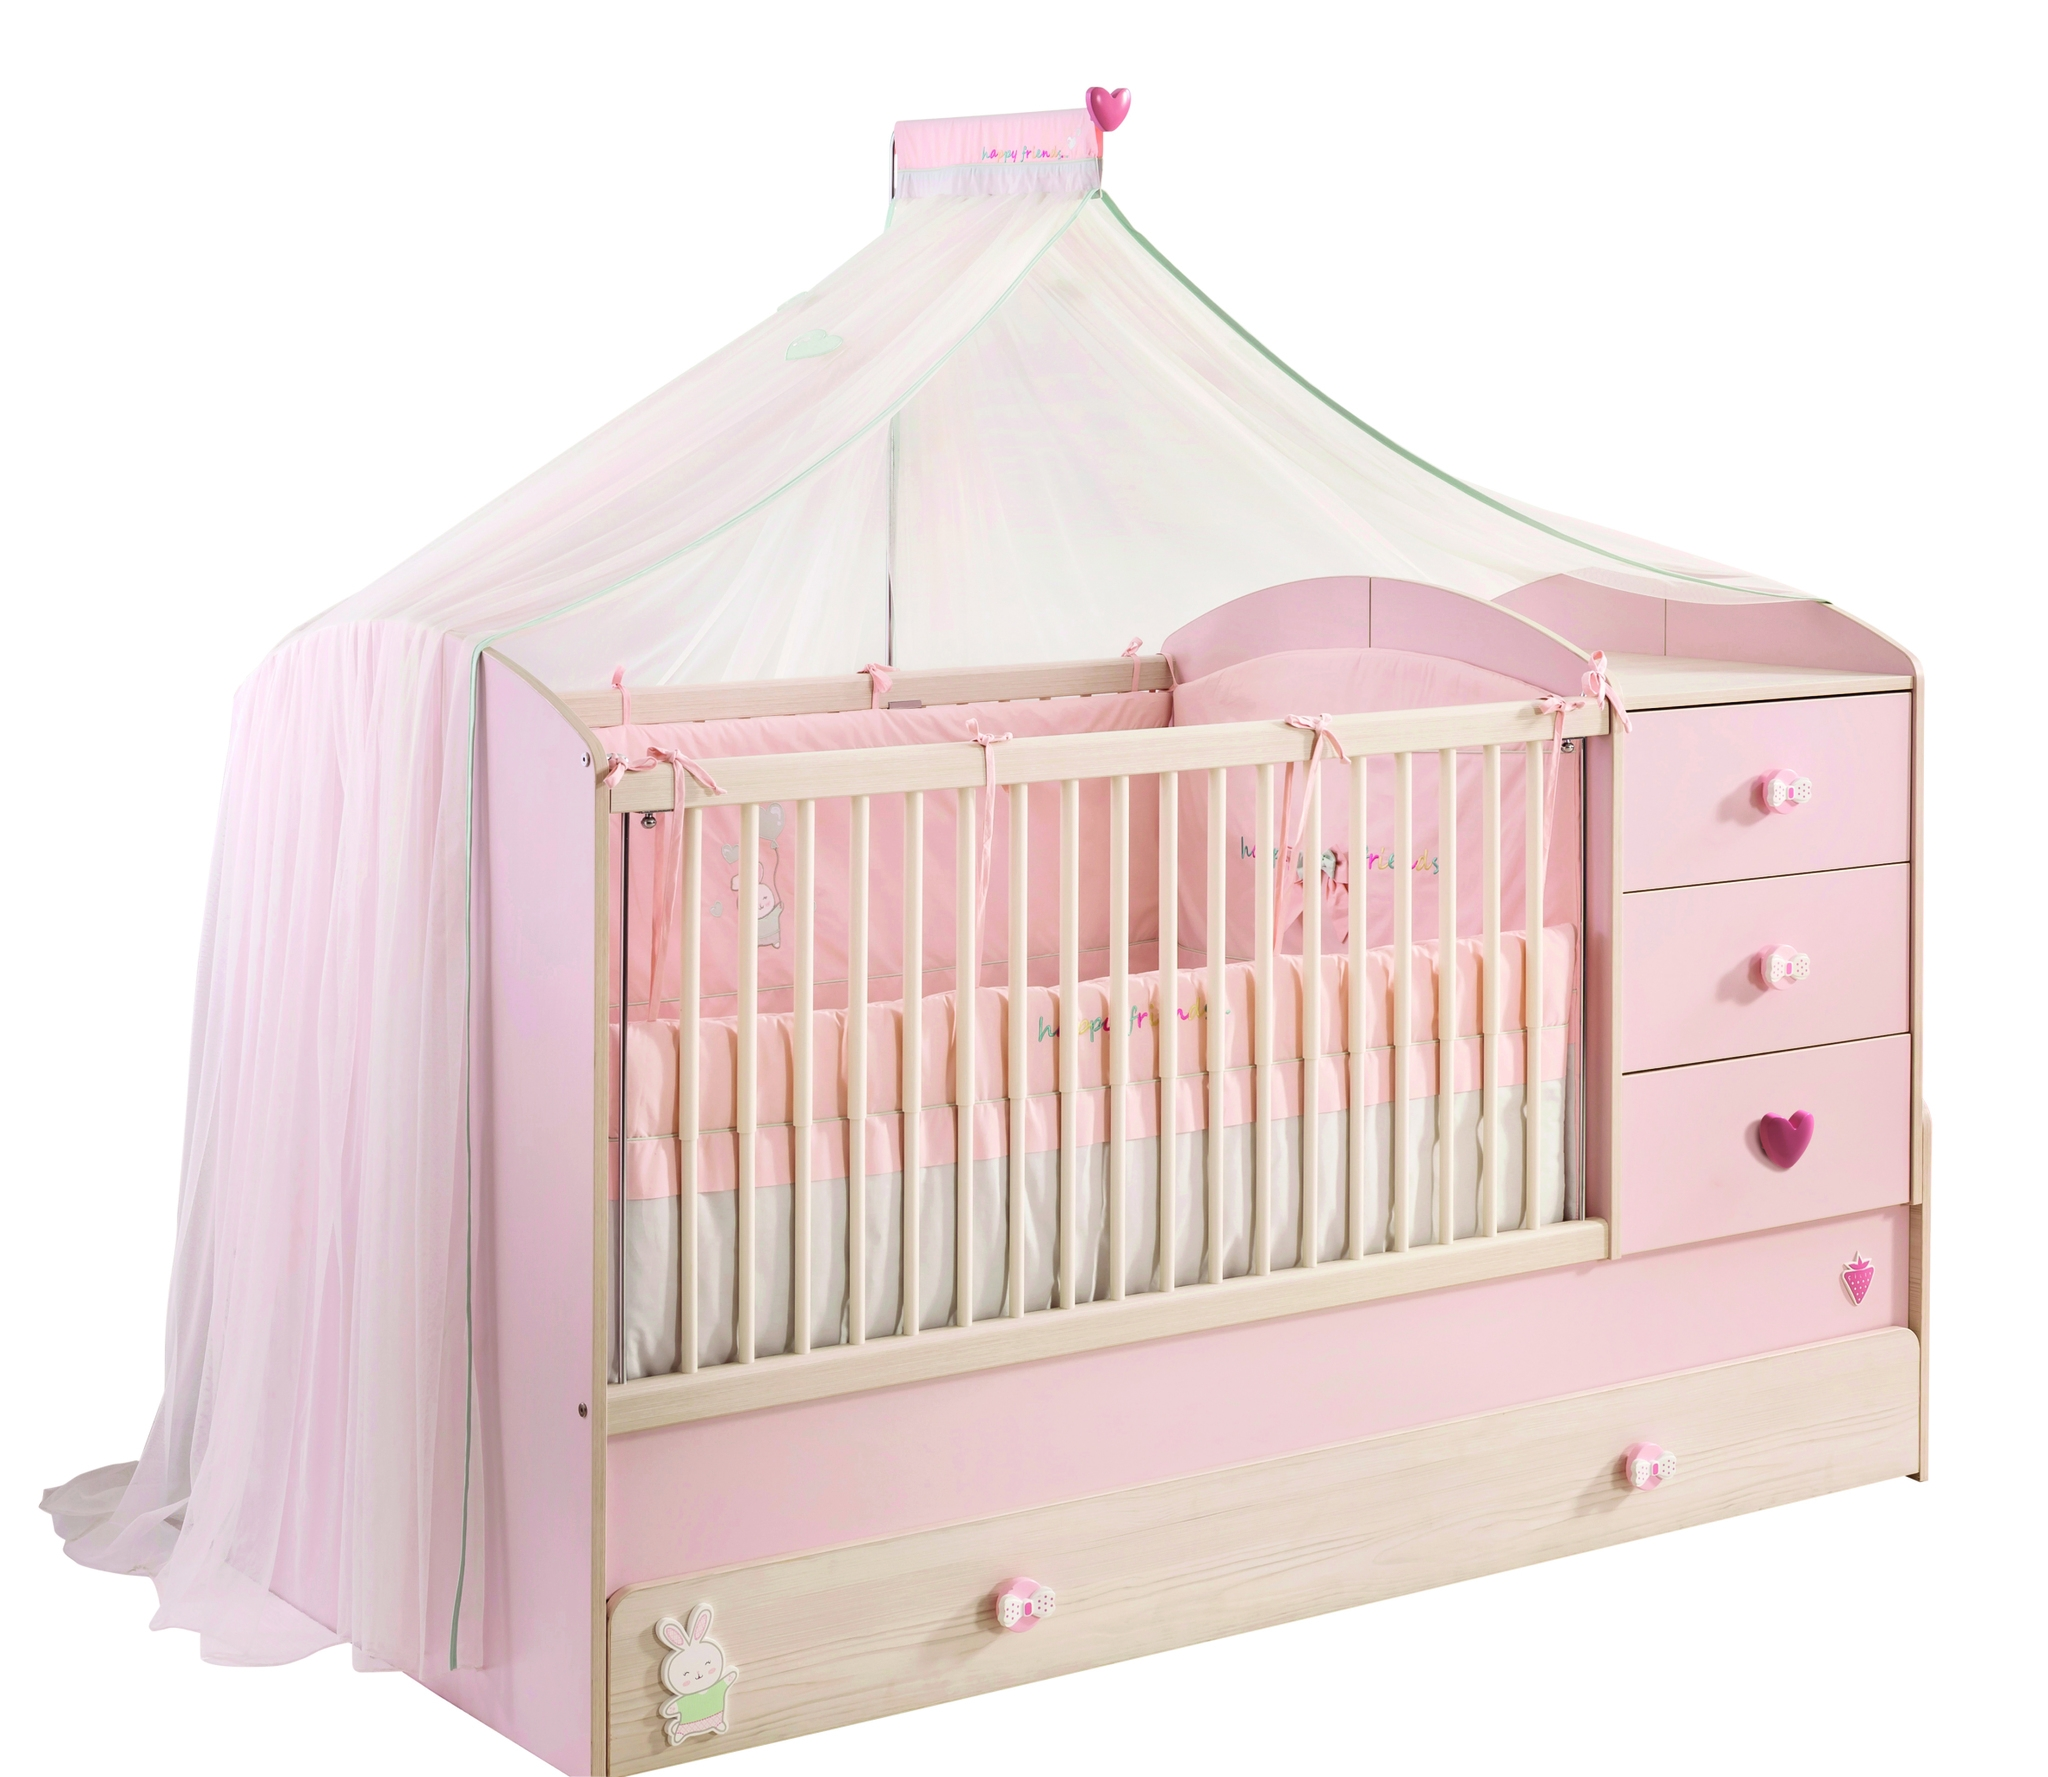 Patut transformabil din pal cu sertar, pentru bebe Baby Girl Light Pink / Nature, 180 x 80 cm imagine